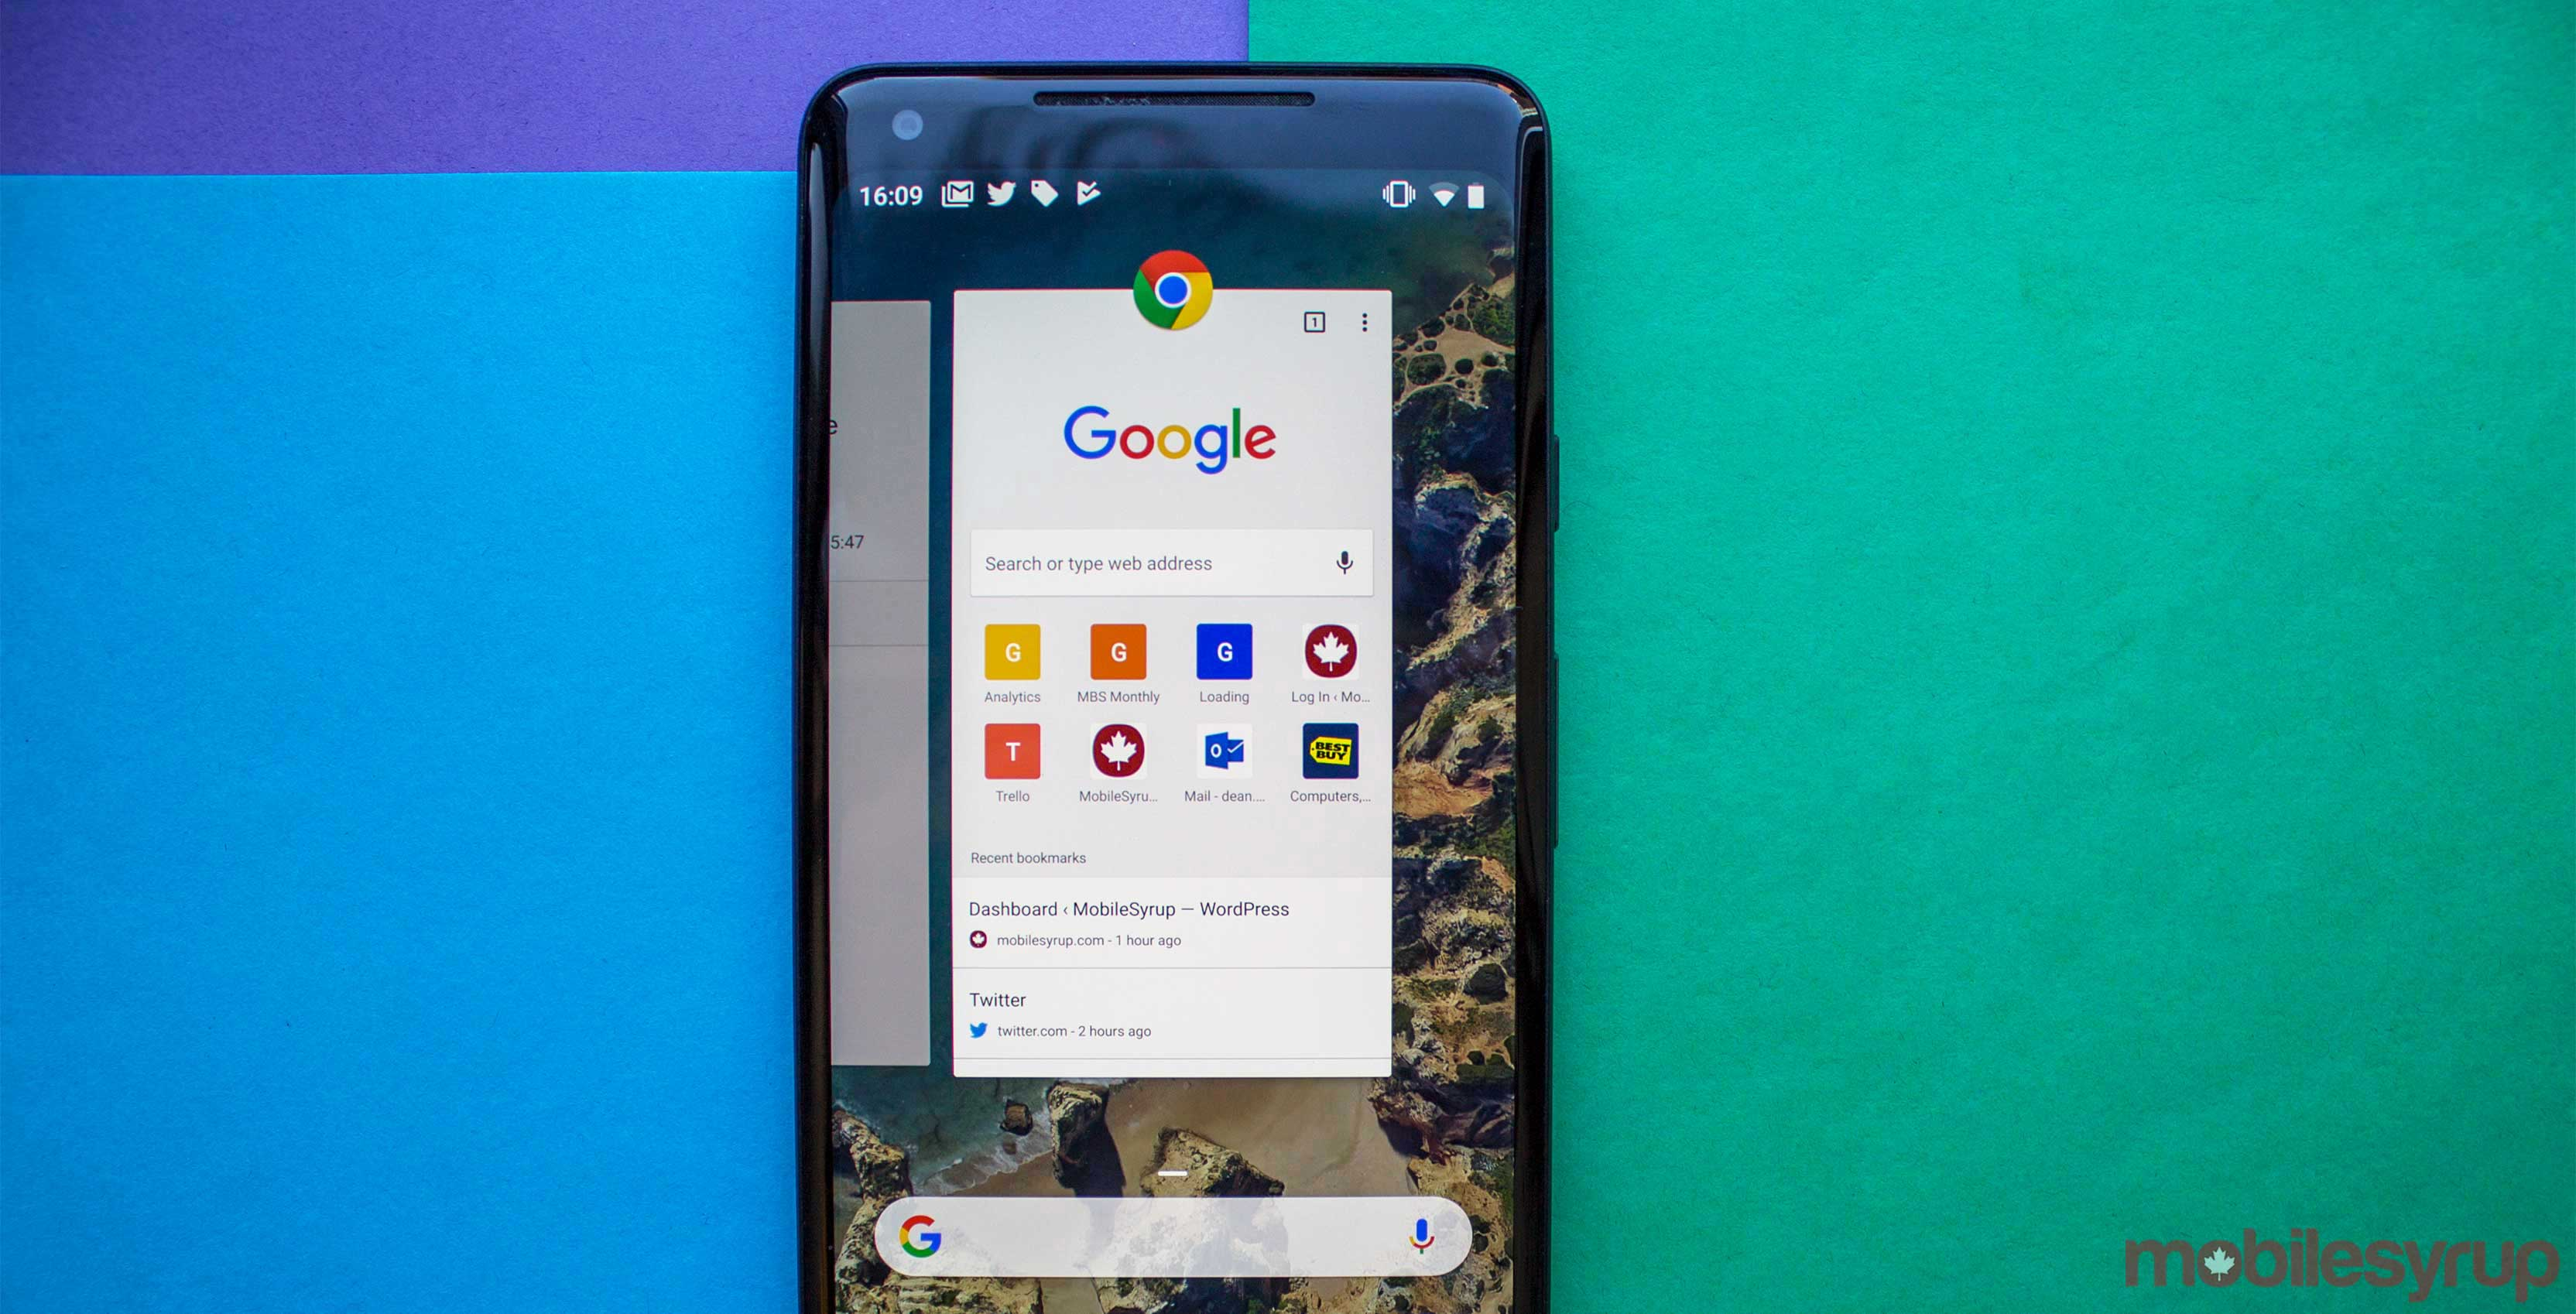 Here are all the Android P features announced at Google I/O 2018